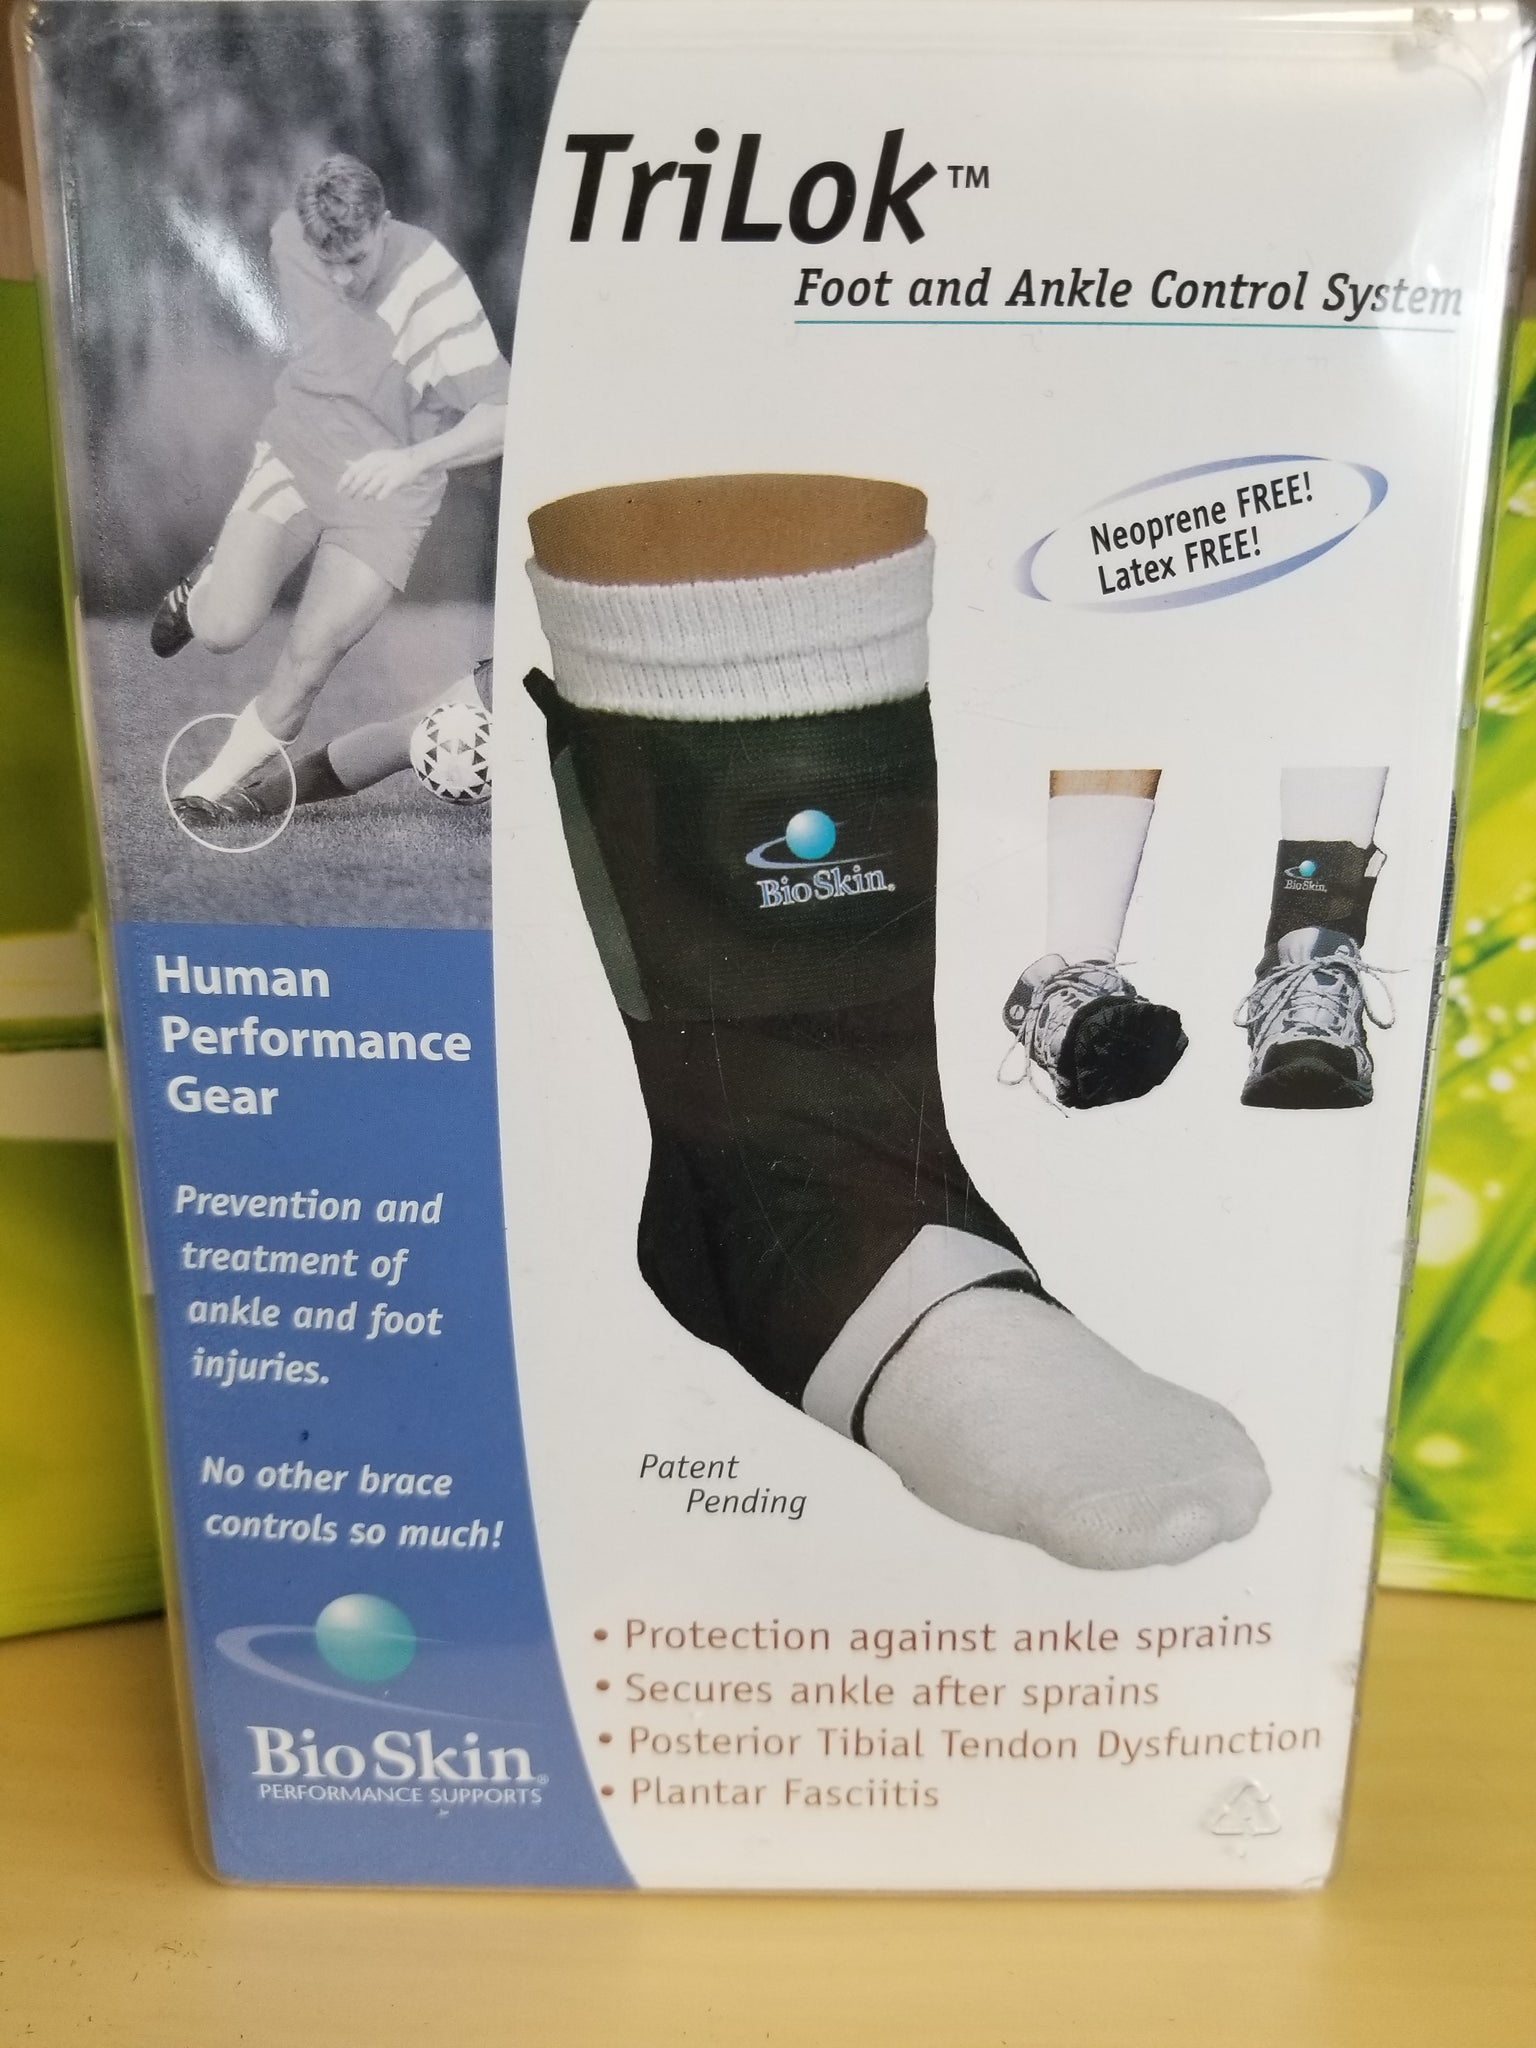 TriLok Foot and Ankle Control System